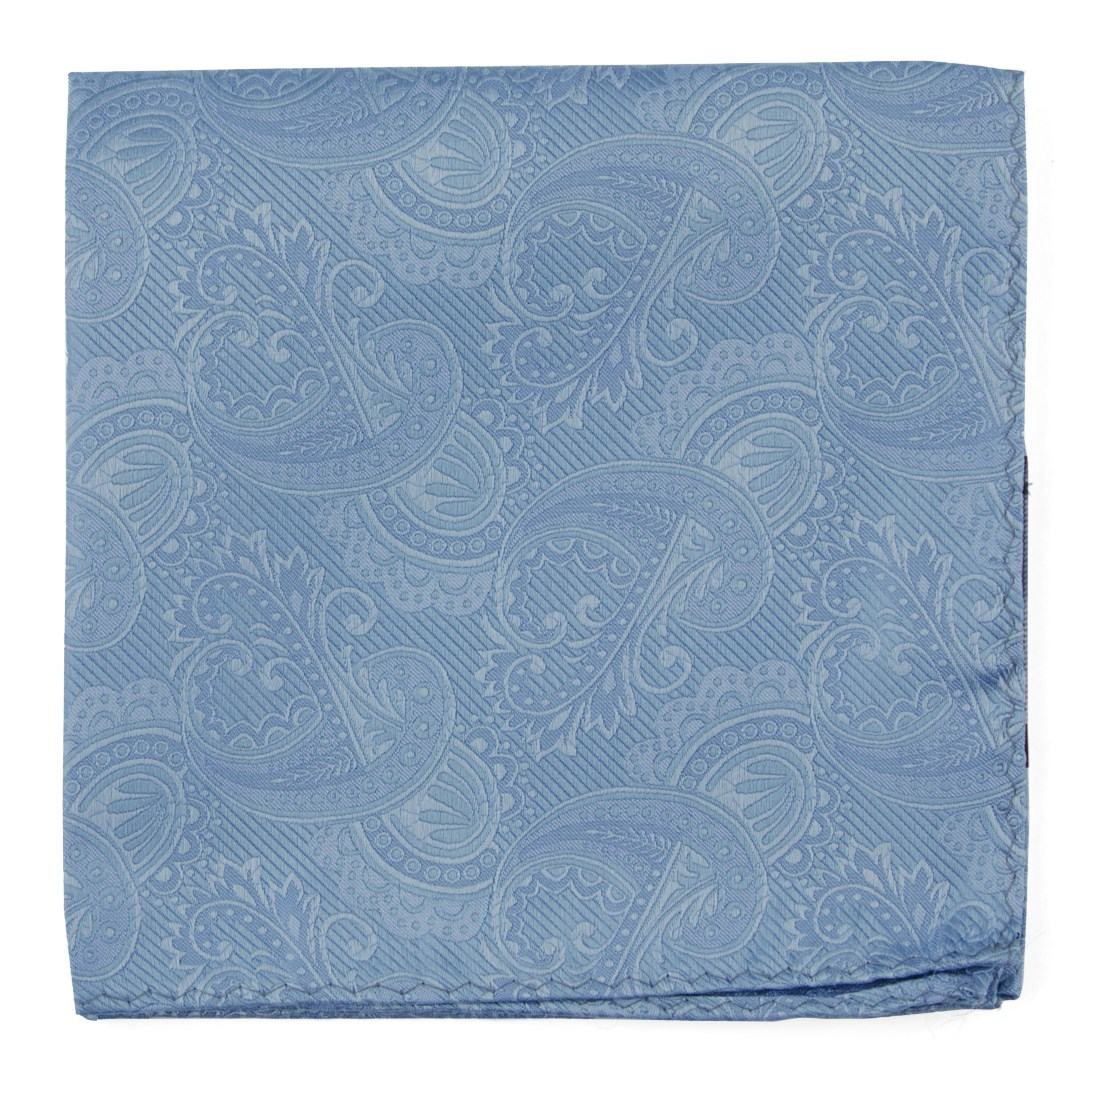 c8122810ed9a Steel Blue Twill Paisley Pocket Square in 2019 | Products | Pocket ...